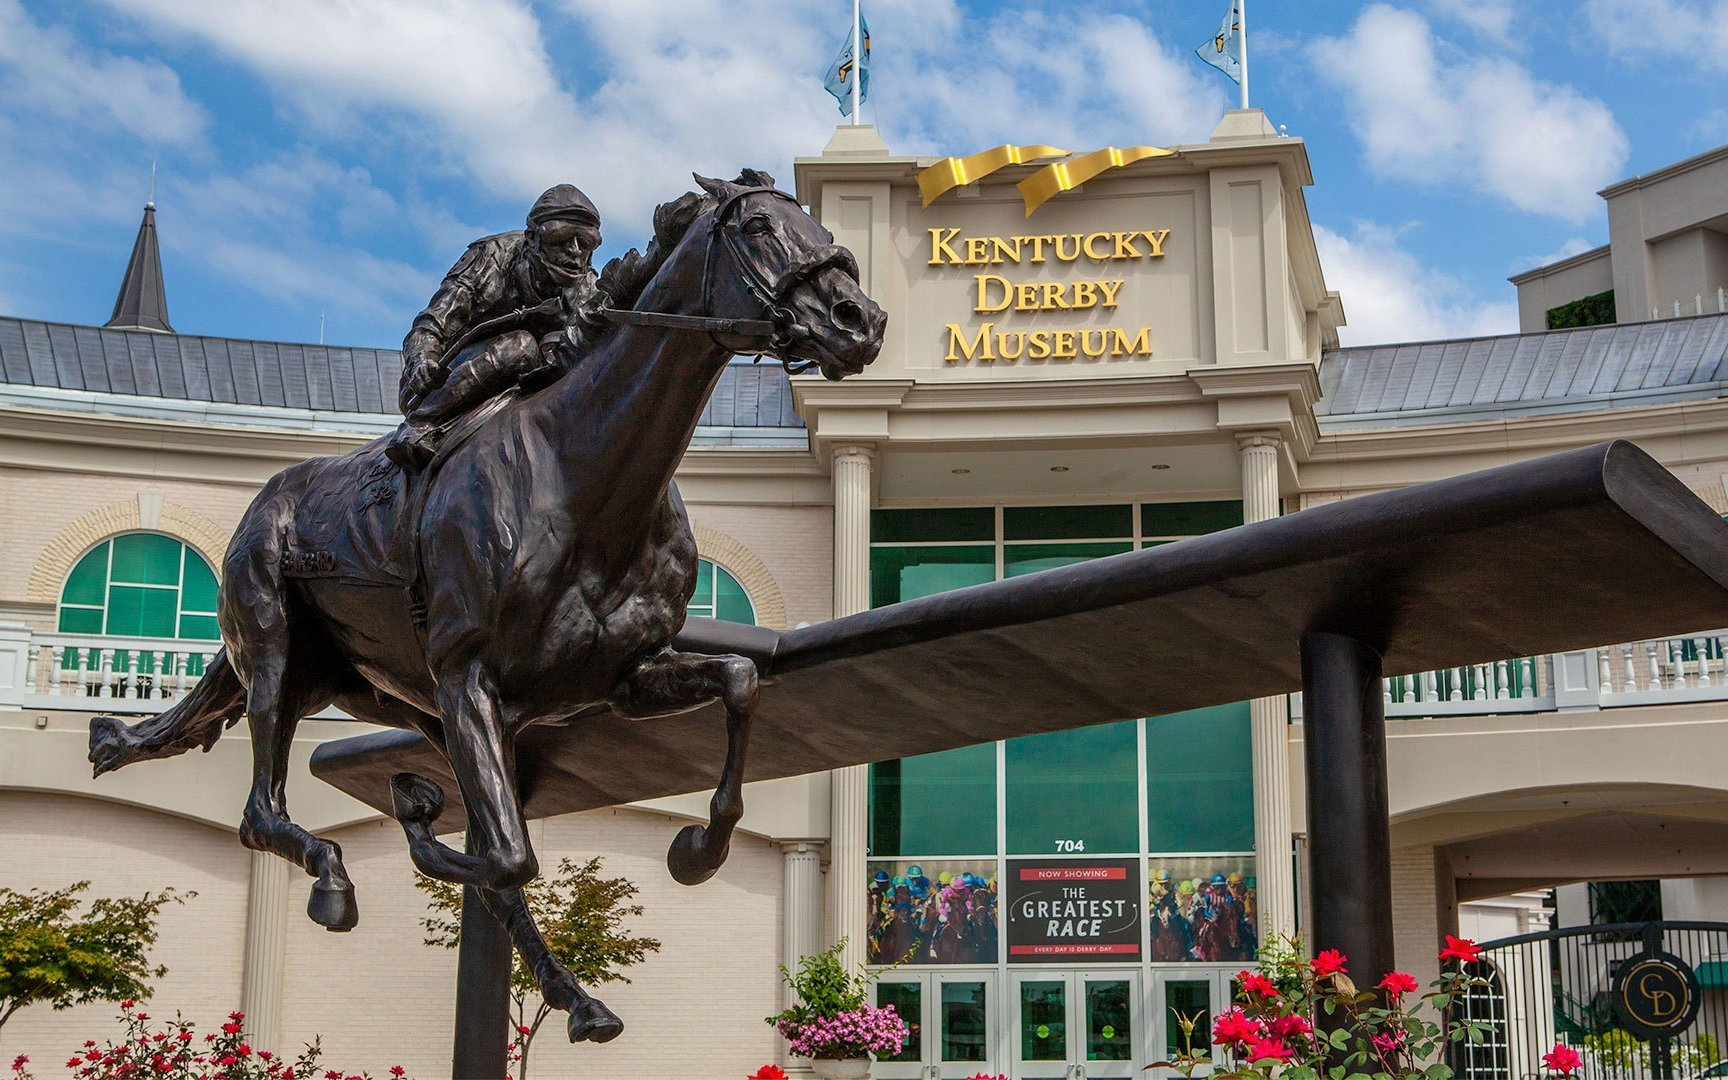 Kentucky Derby Museum donating over $10,000 to COVID-19 relief efforts